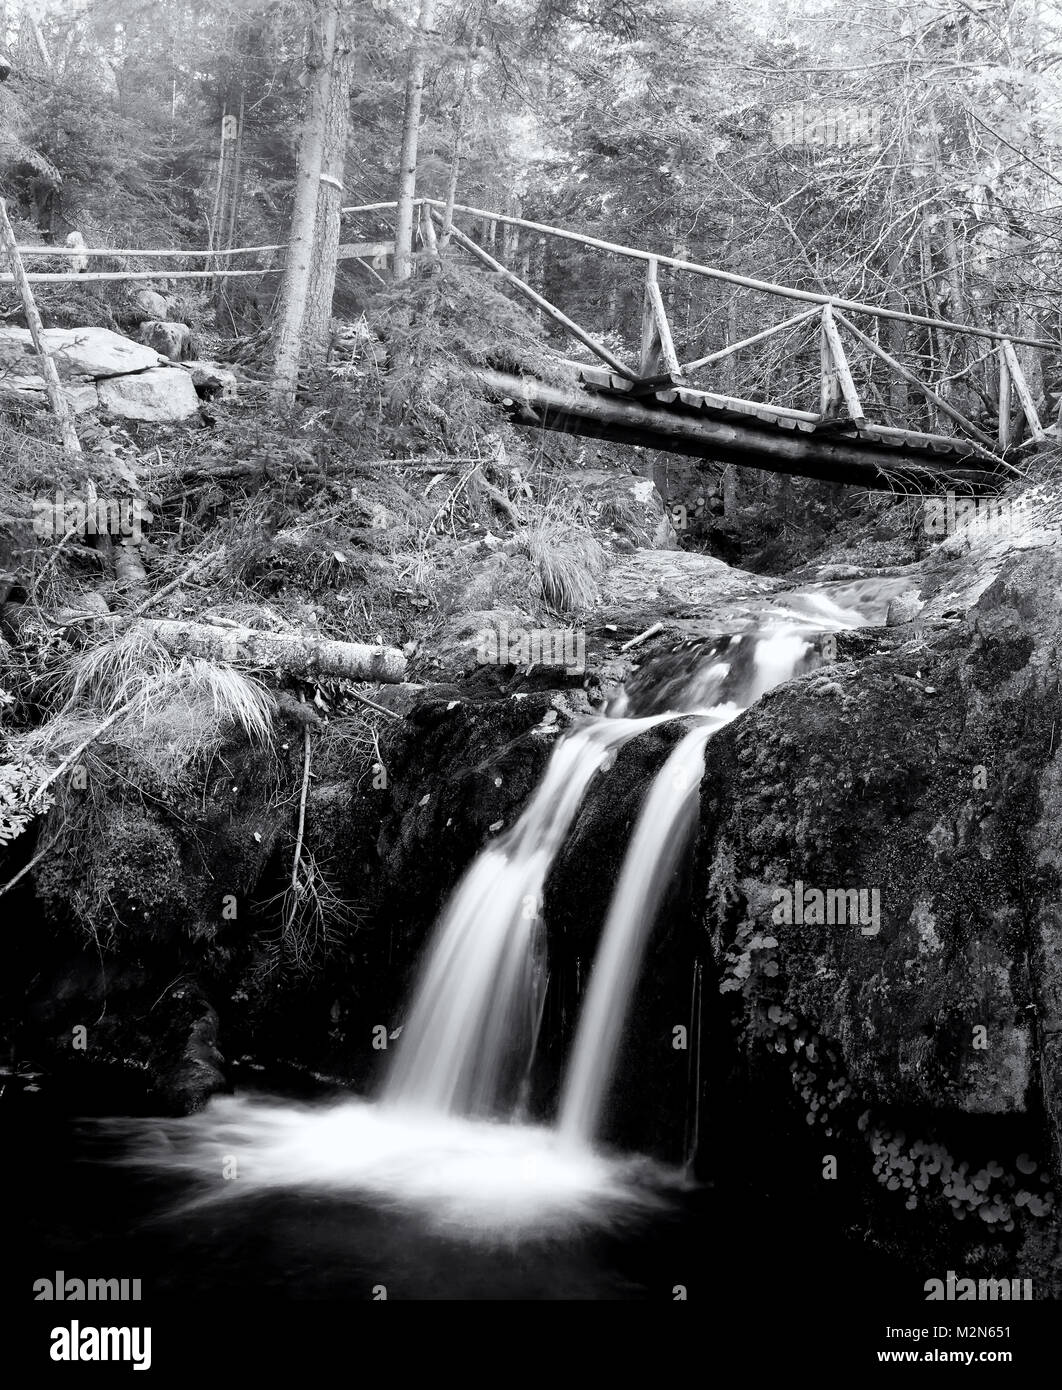 Waterfall cold fresh water stream long shutter speed blurred motion on black stone rocks in park - Stock Image